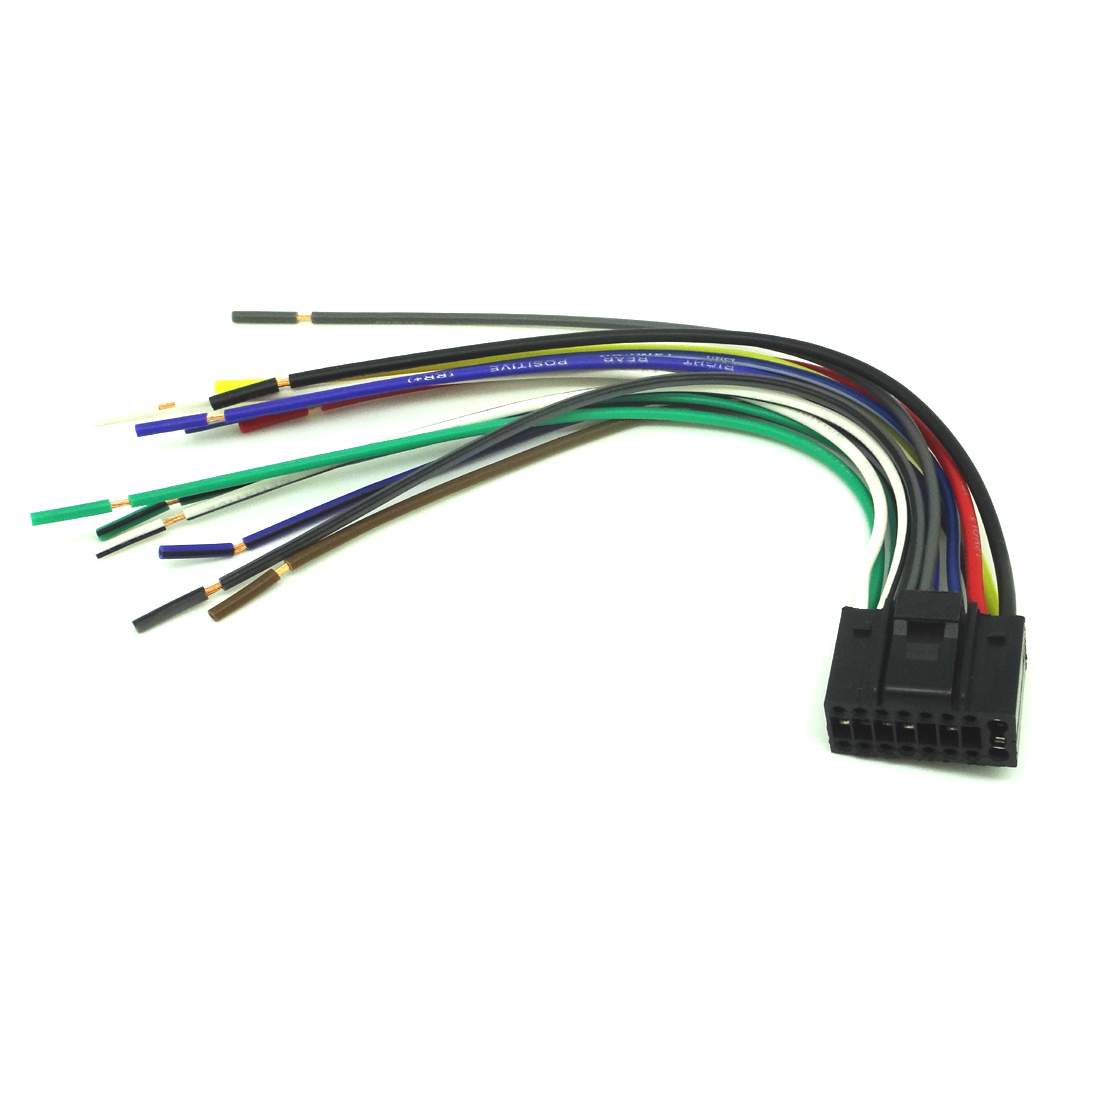 player 16 pin radio car audio stereo wire harness for kenwood kdc [ 1100 x 1100 Pixel ]